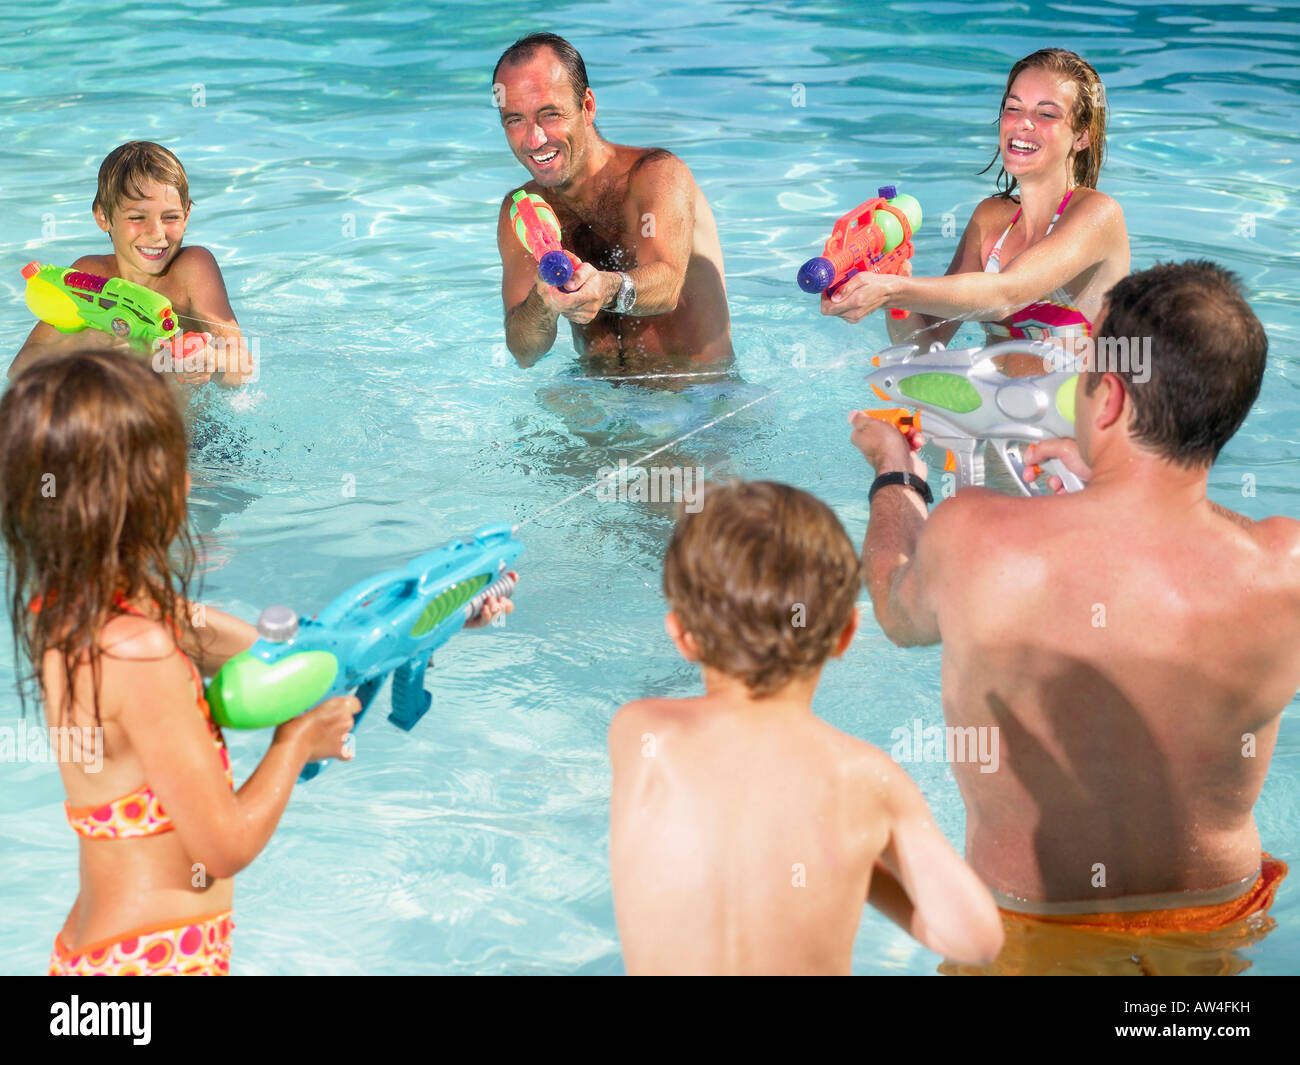 Kids and adults playing with water guns. - Stock Image